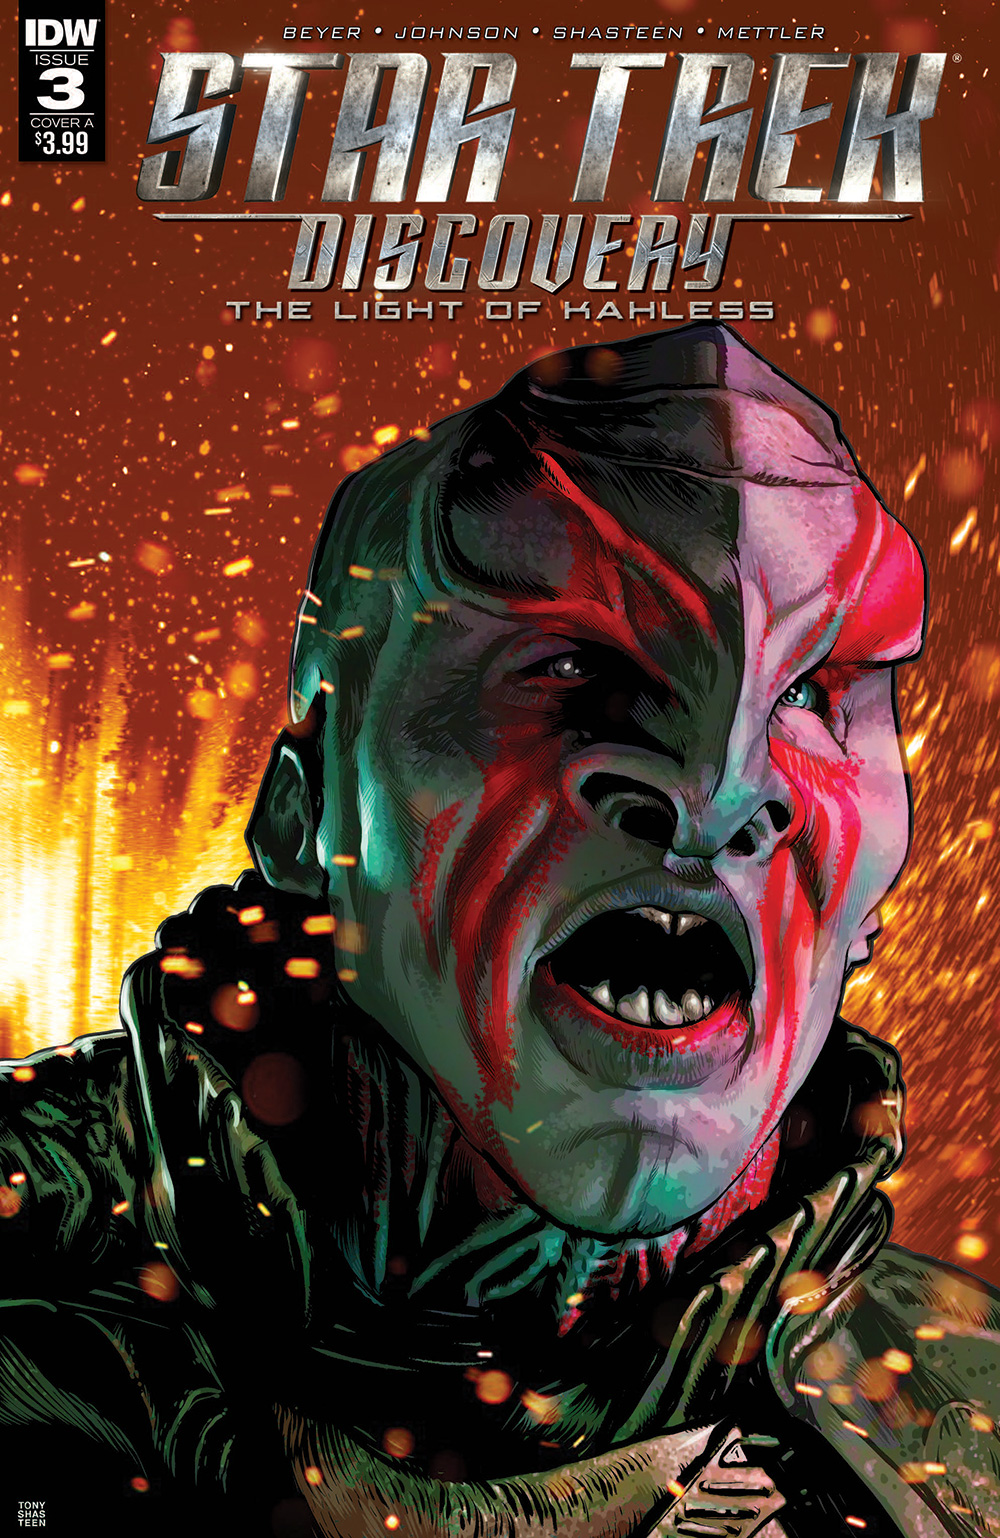 The Light of Kahless, Issue 3